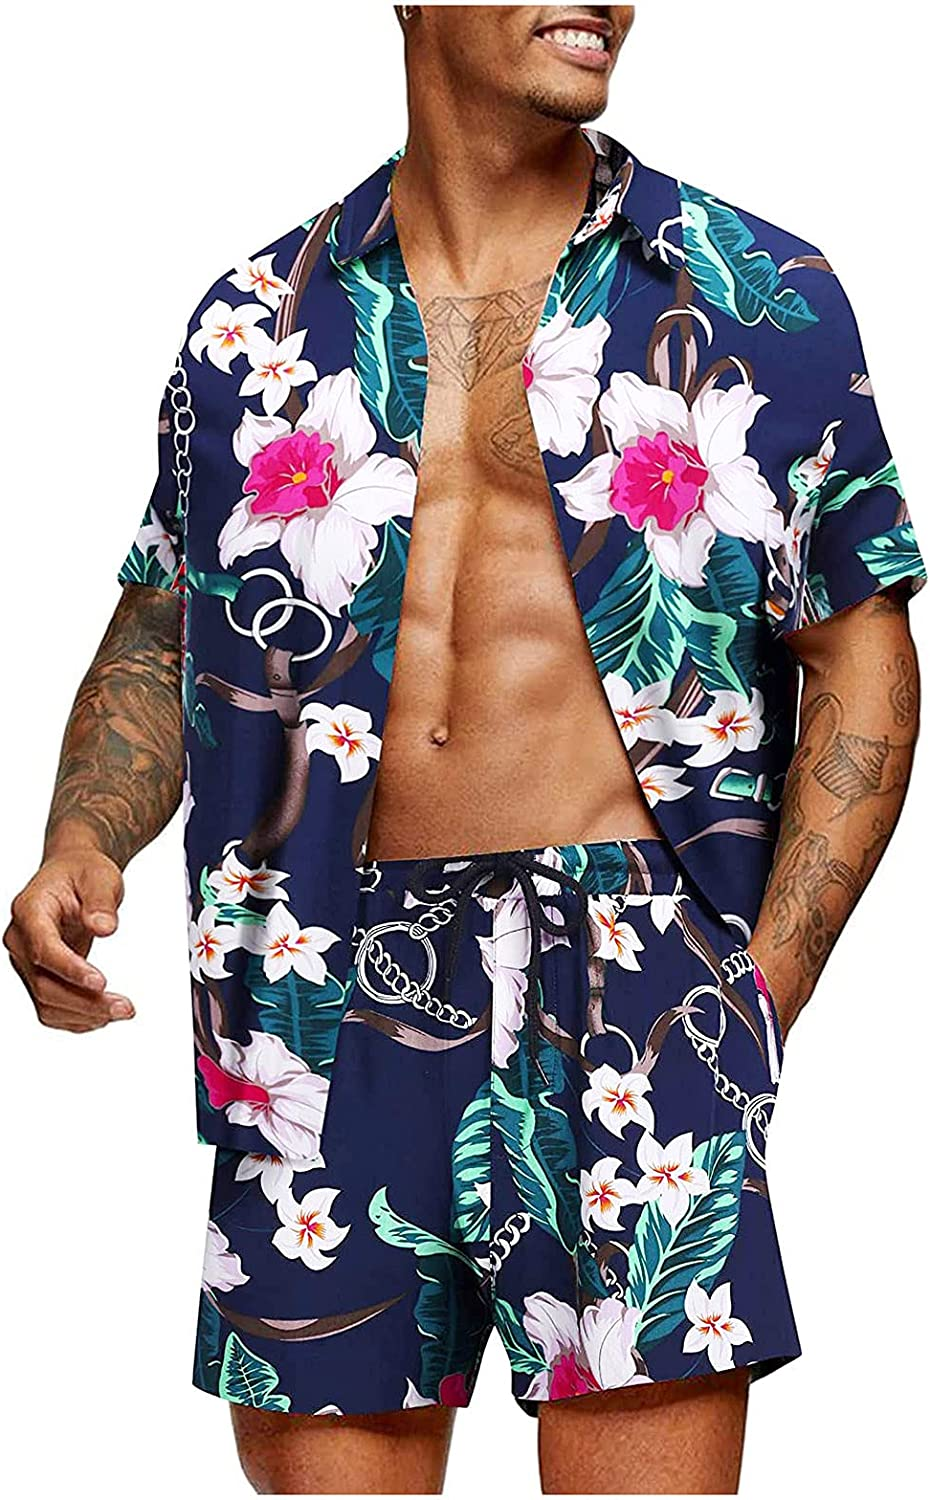 WOCACHI Hawaiian Men's Beach Outfit Sets, Summer Boho Printed Button-down Shirts and Shorts 2 Piece Set for Mens